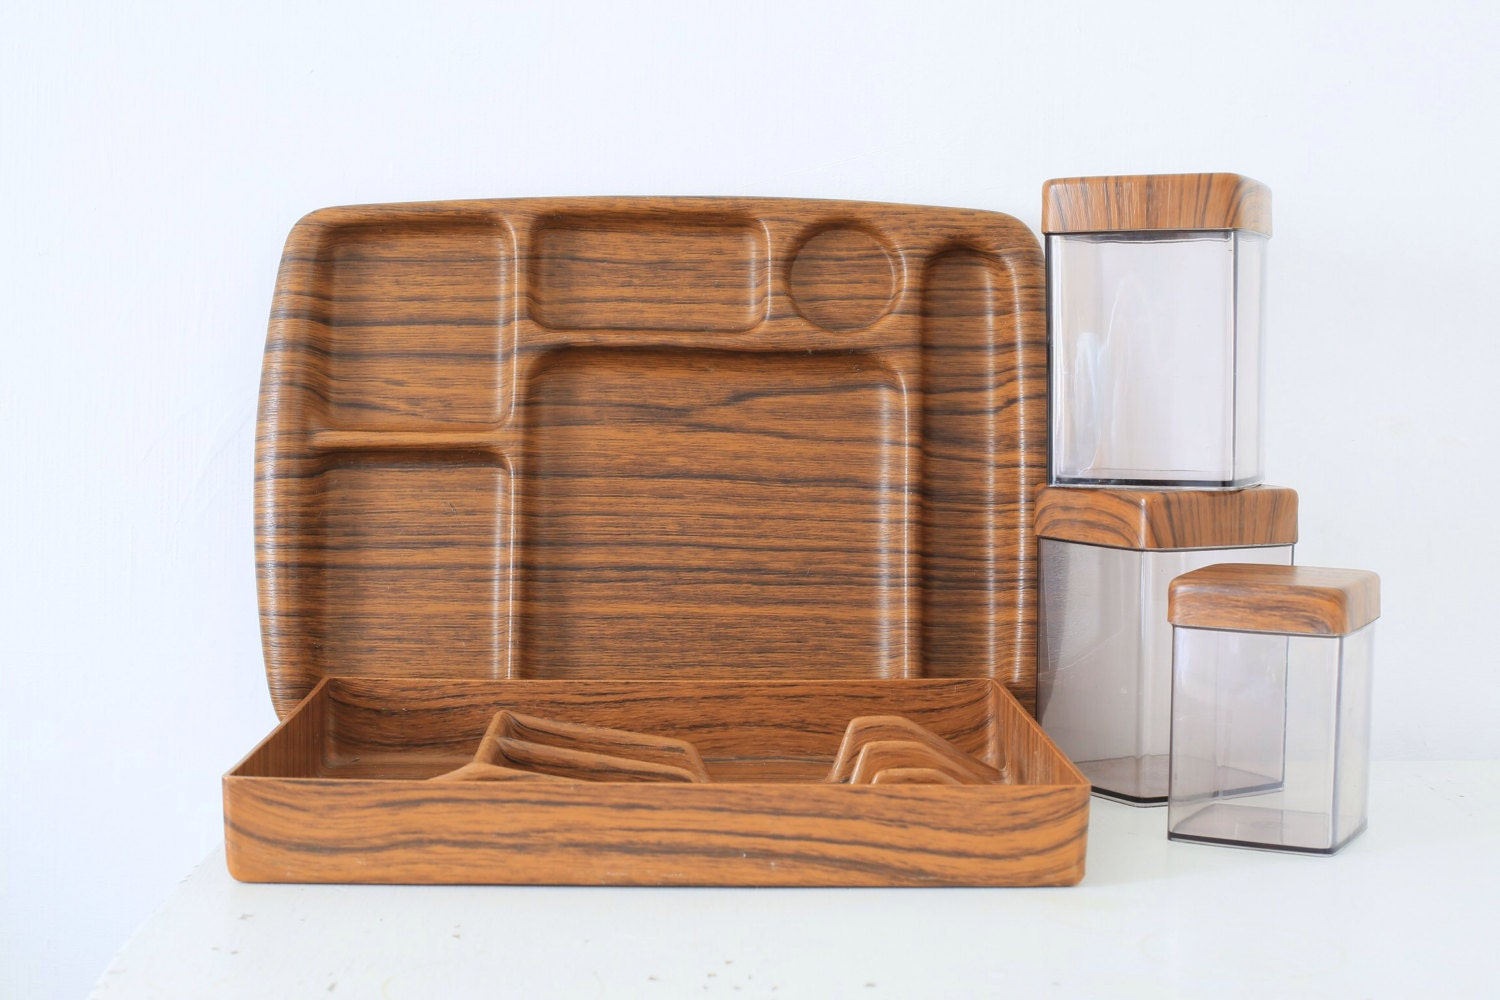 Retro caleppio faux teak kitchen set trays containers italian for Fake kitchen set